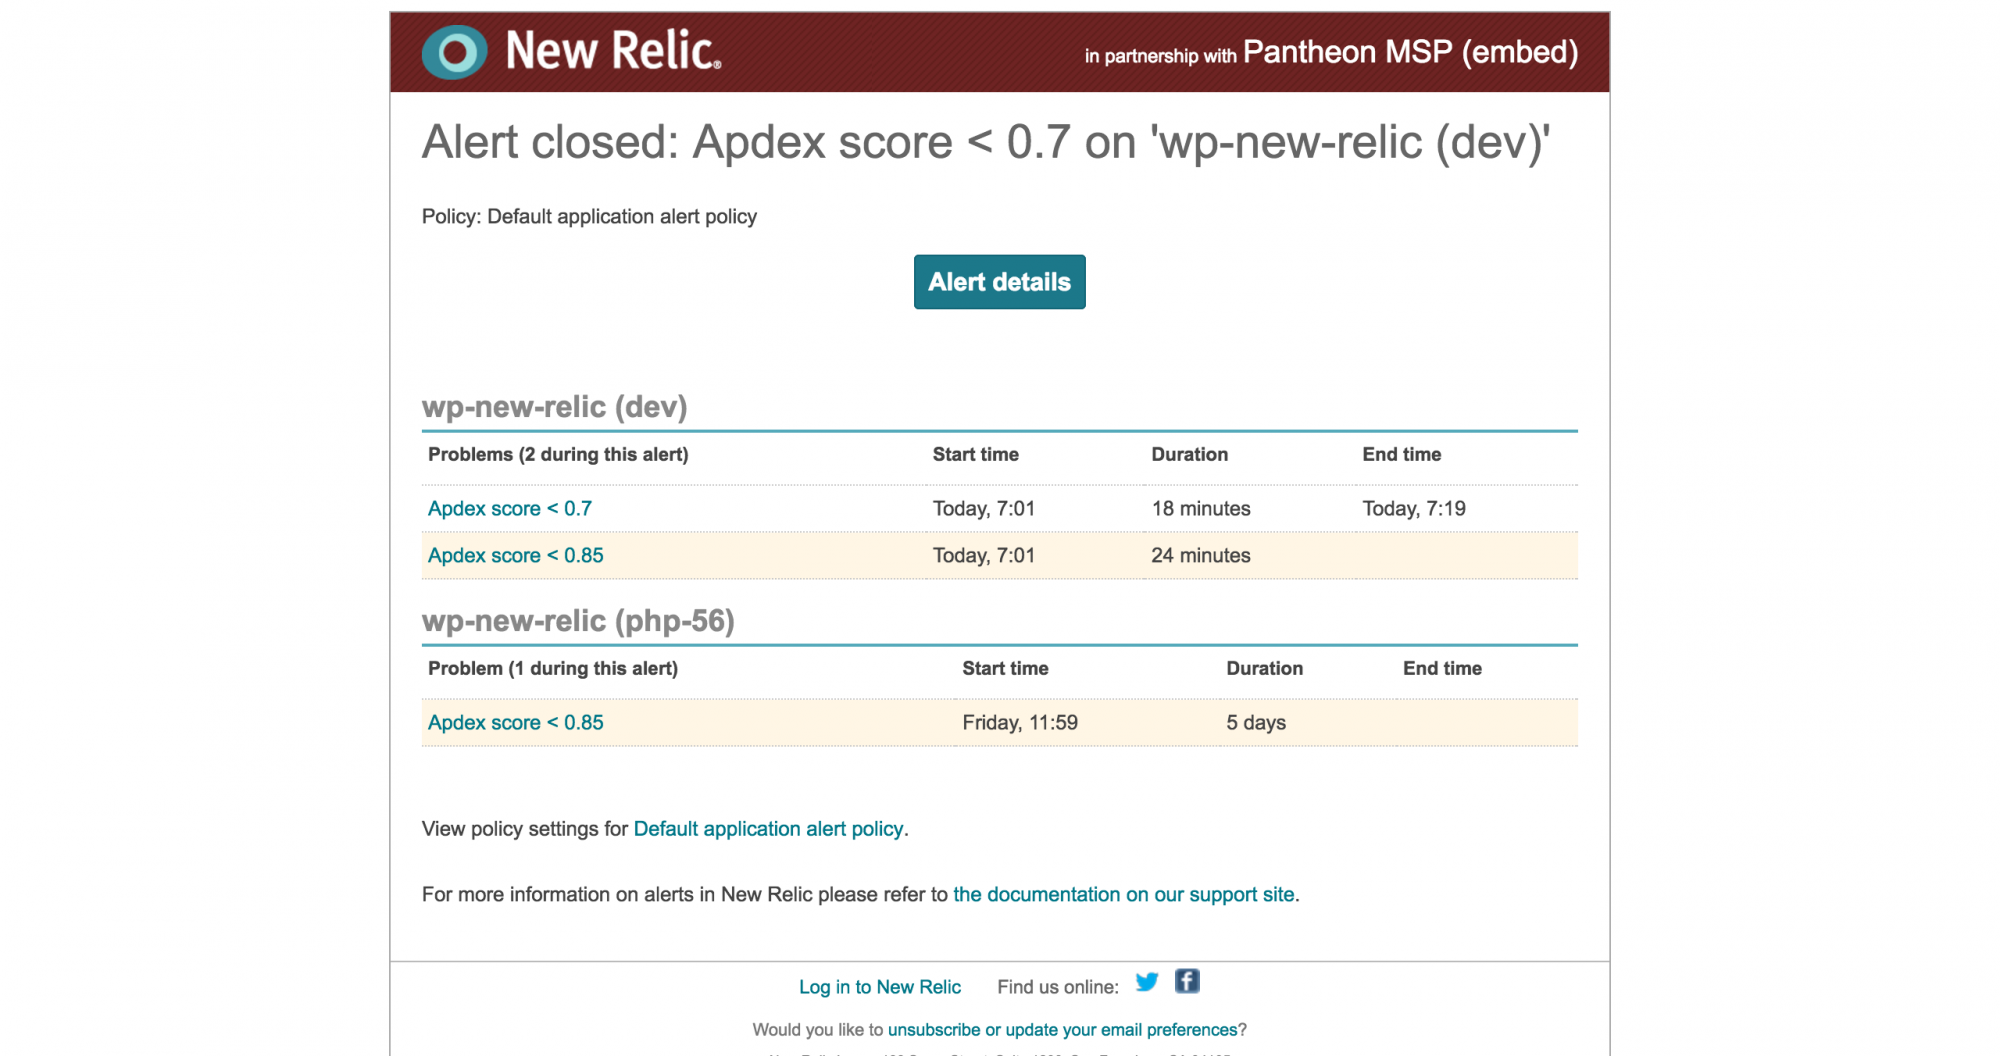 New Relic alert email